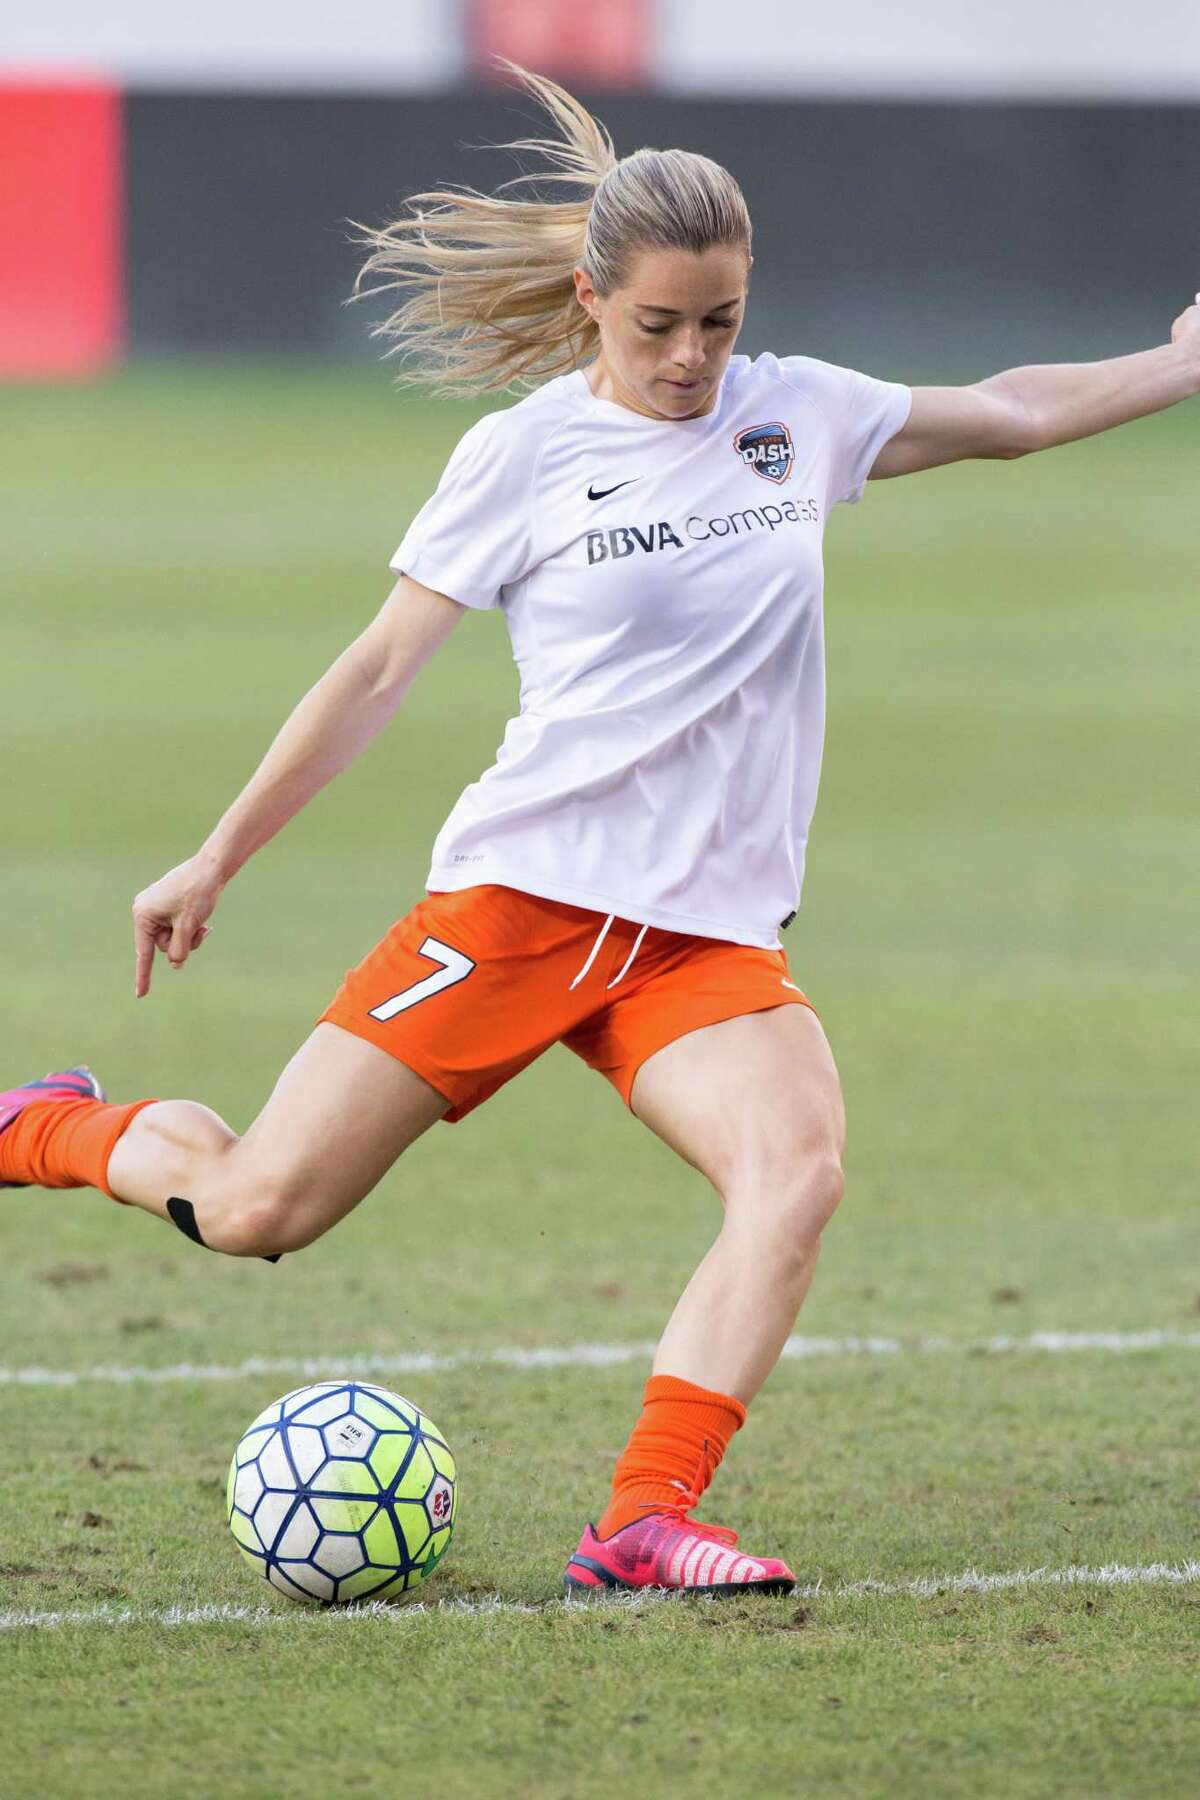 Houston Dash forward Kealia Ohai (7) warms up on the field against the FC Kansas City before action between the Houston Dash and the FC Kansas City during a soccer game at BBVA Compass, Sunday, June 19, 2016, in Houston. FC Kansas City defeated Houston Dash 1-0. ( Juan DeLeon / for the Houston Chronicle )